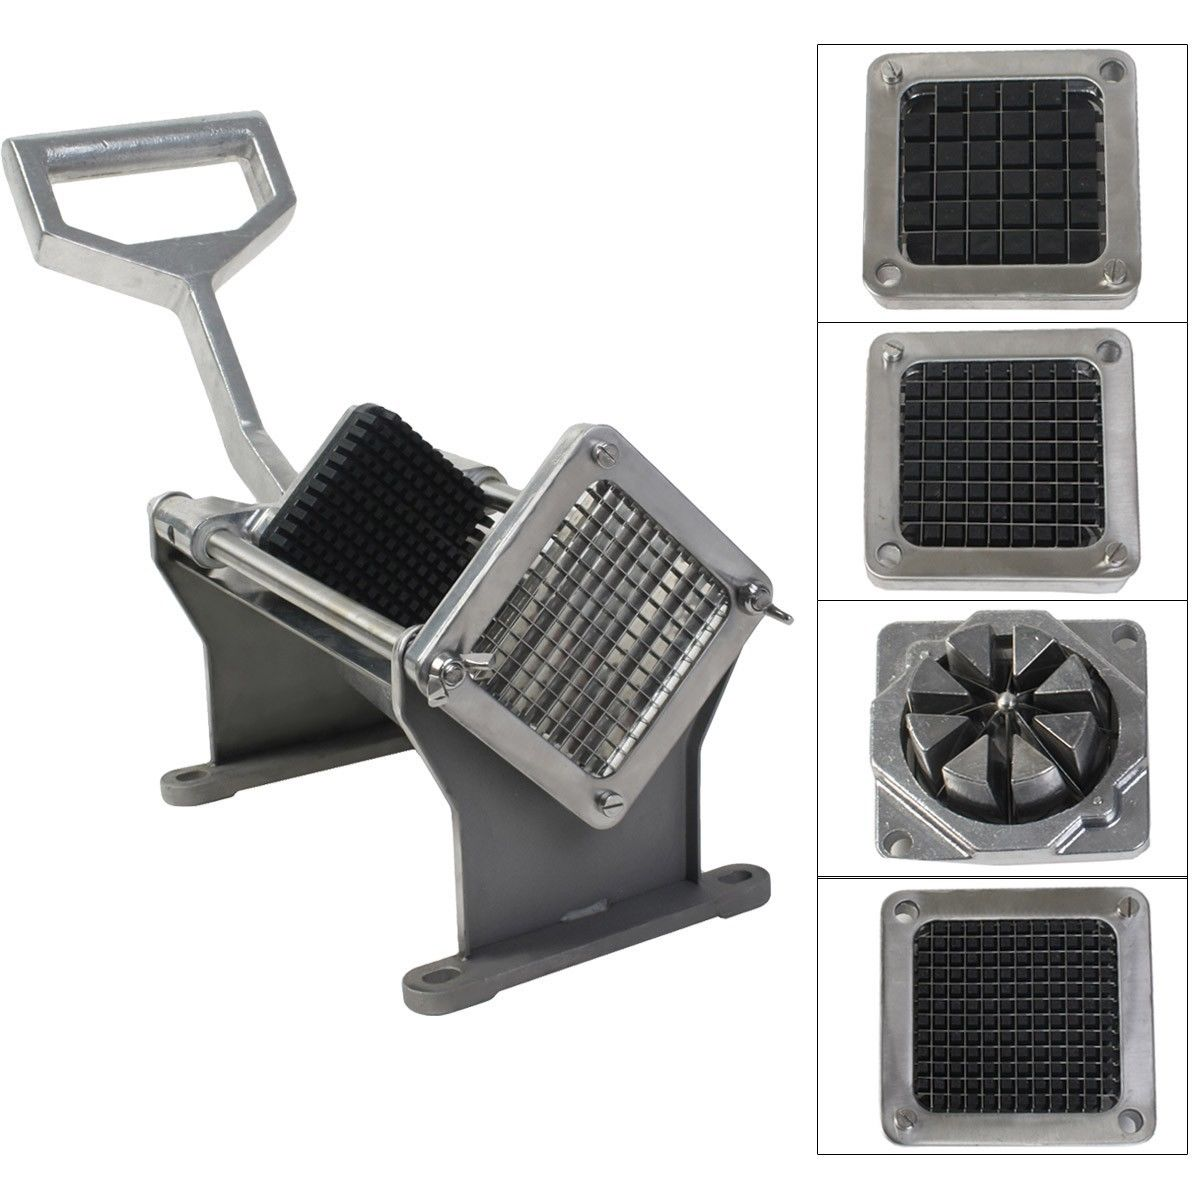 Costway Potato French Fry Fruit Vegetable Cutter Slicer Commercial Quality W 4 Blades